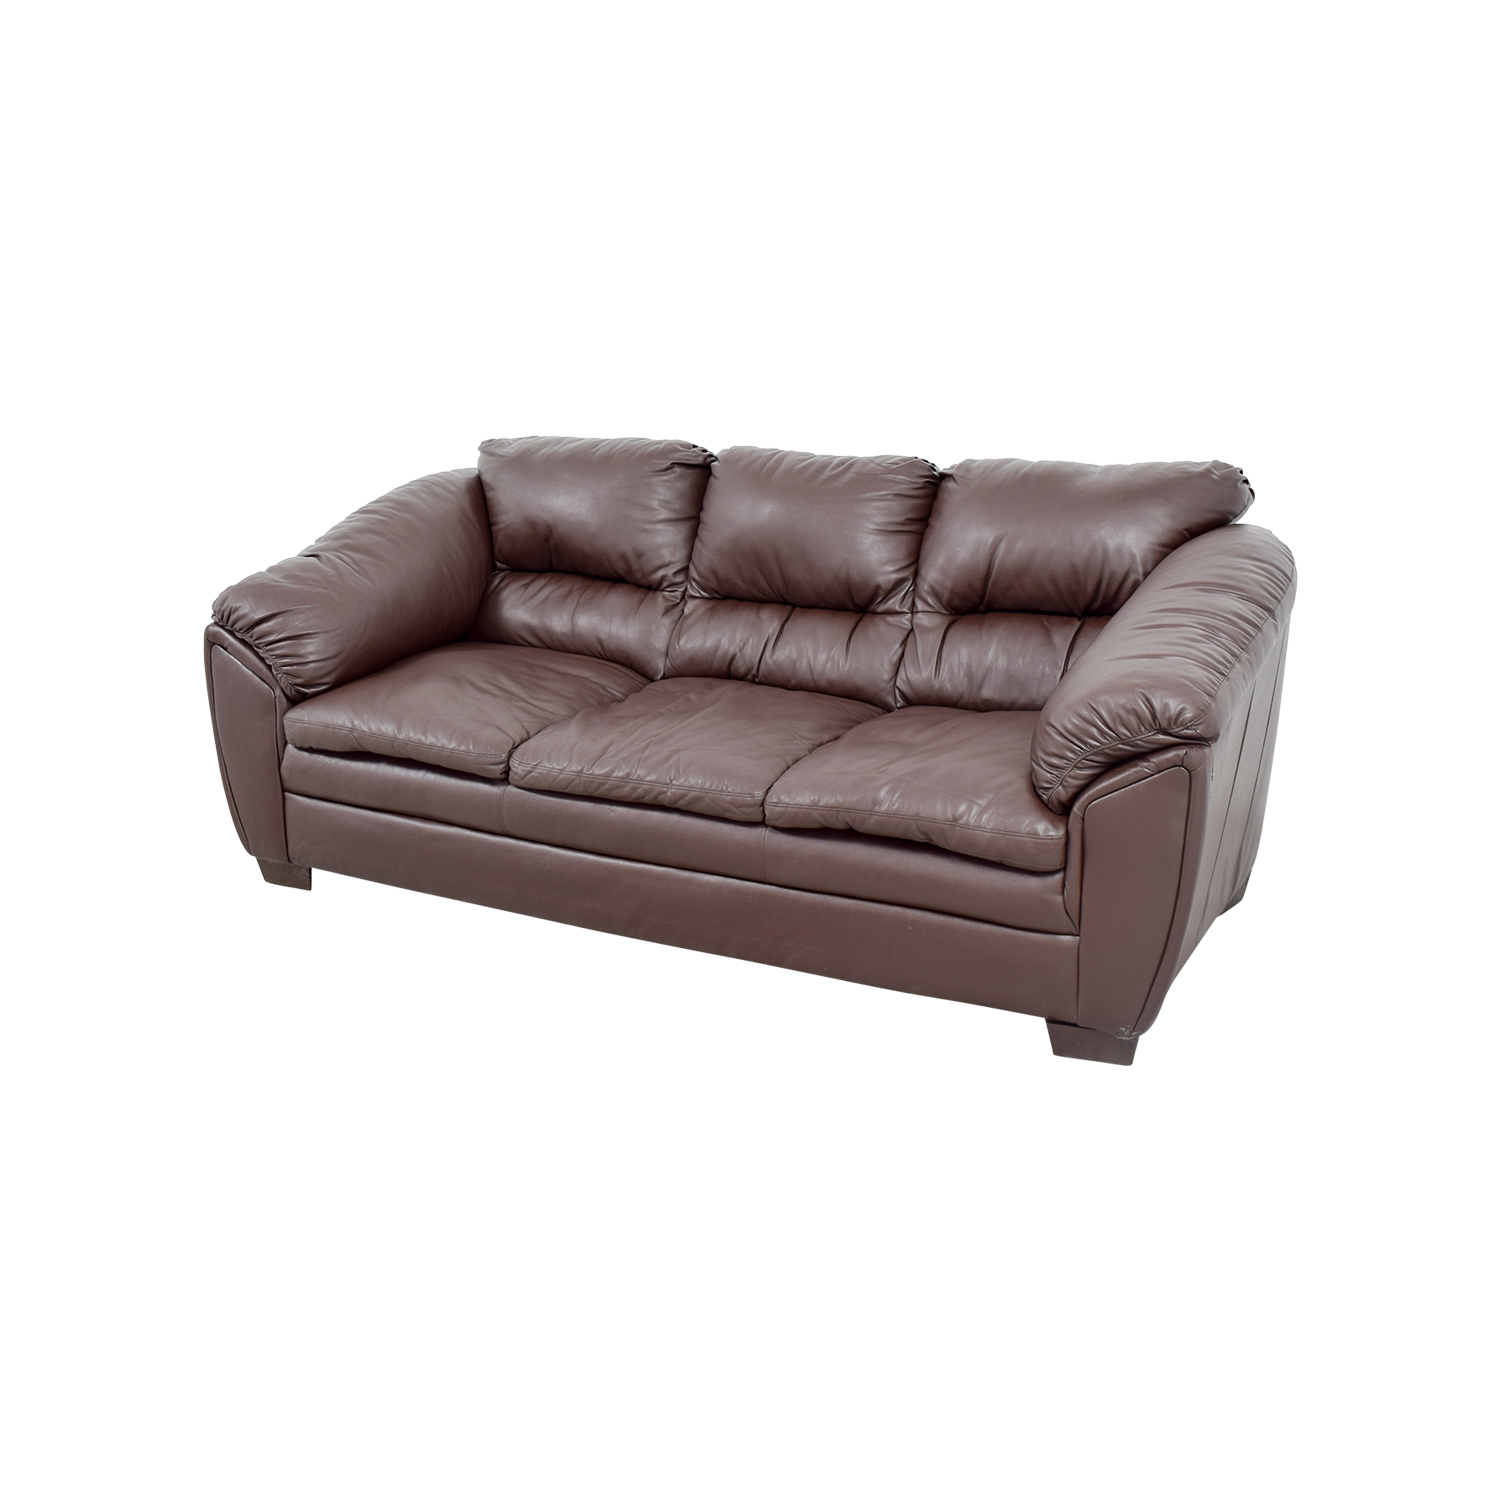 68 OFF  Brown Leather Sofa  Sofas